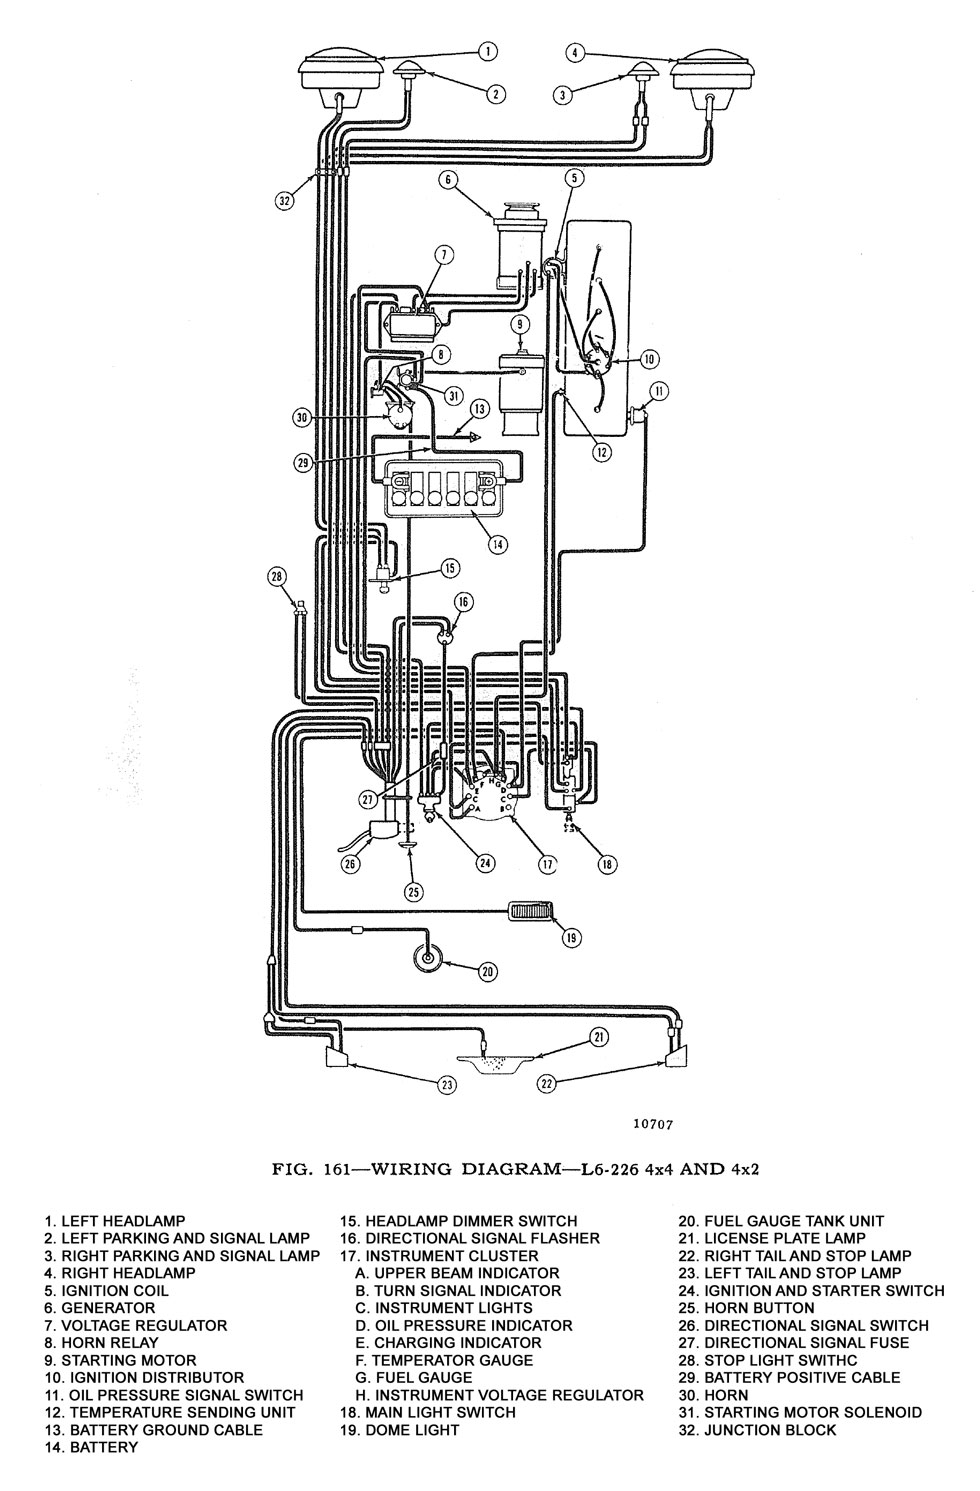 hight resolution of wiring diagram l6 226 4x4 and 4x2 willys starter diagram 57 willys wiring diagram